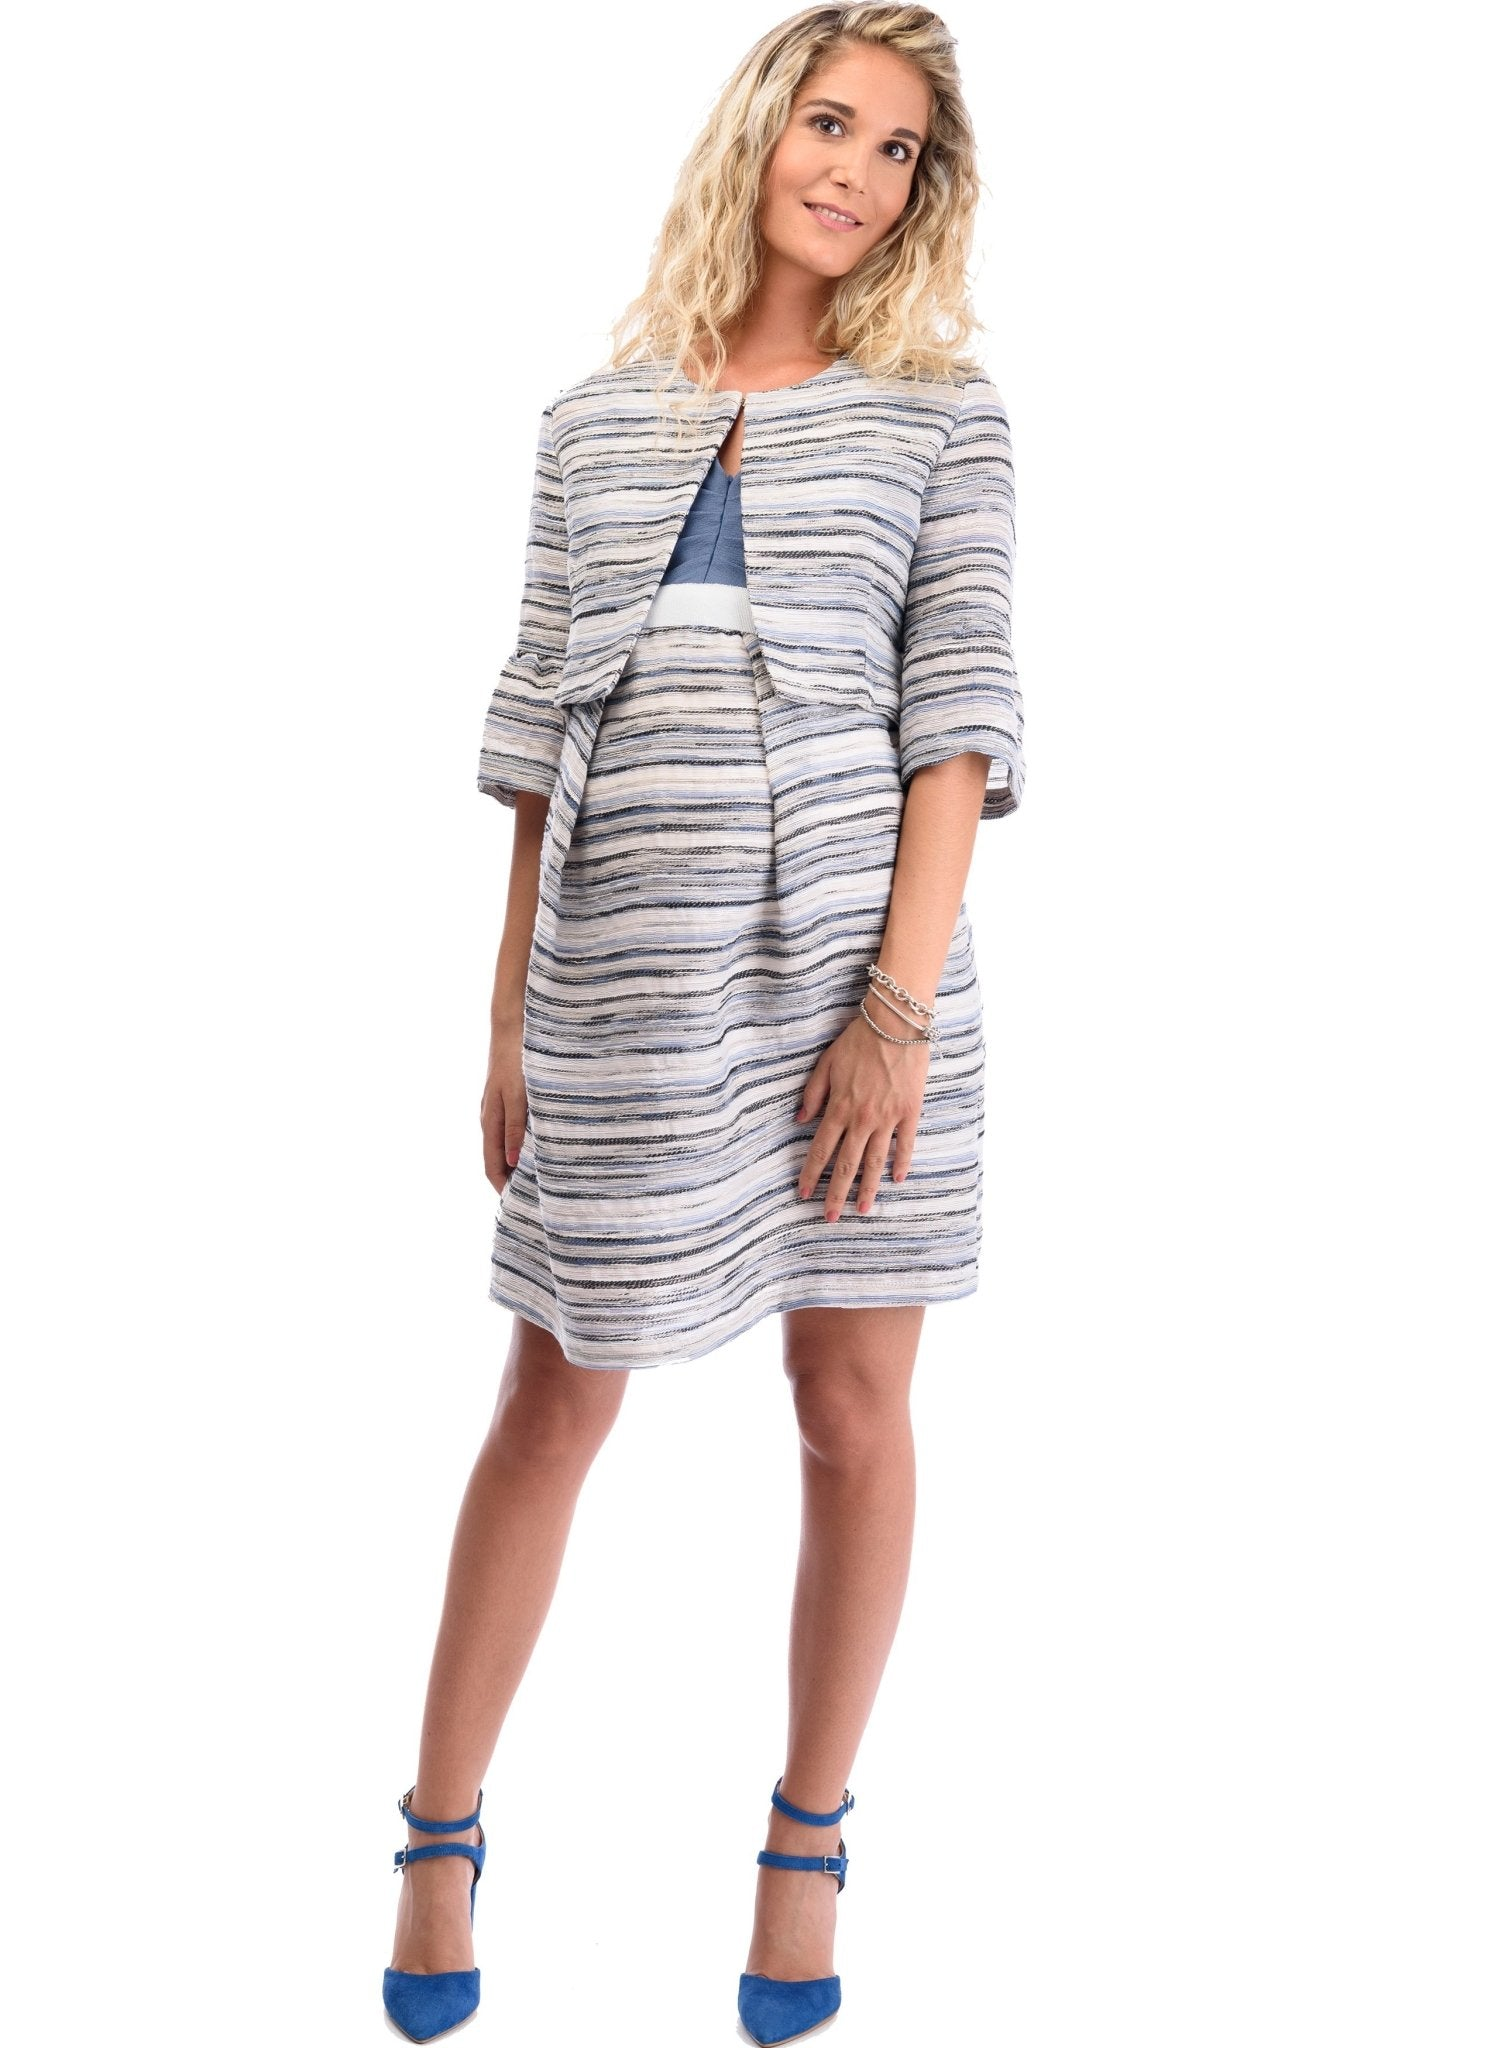 Maternity Dress with Jacket (2-Piece) - Mums and Bumps